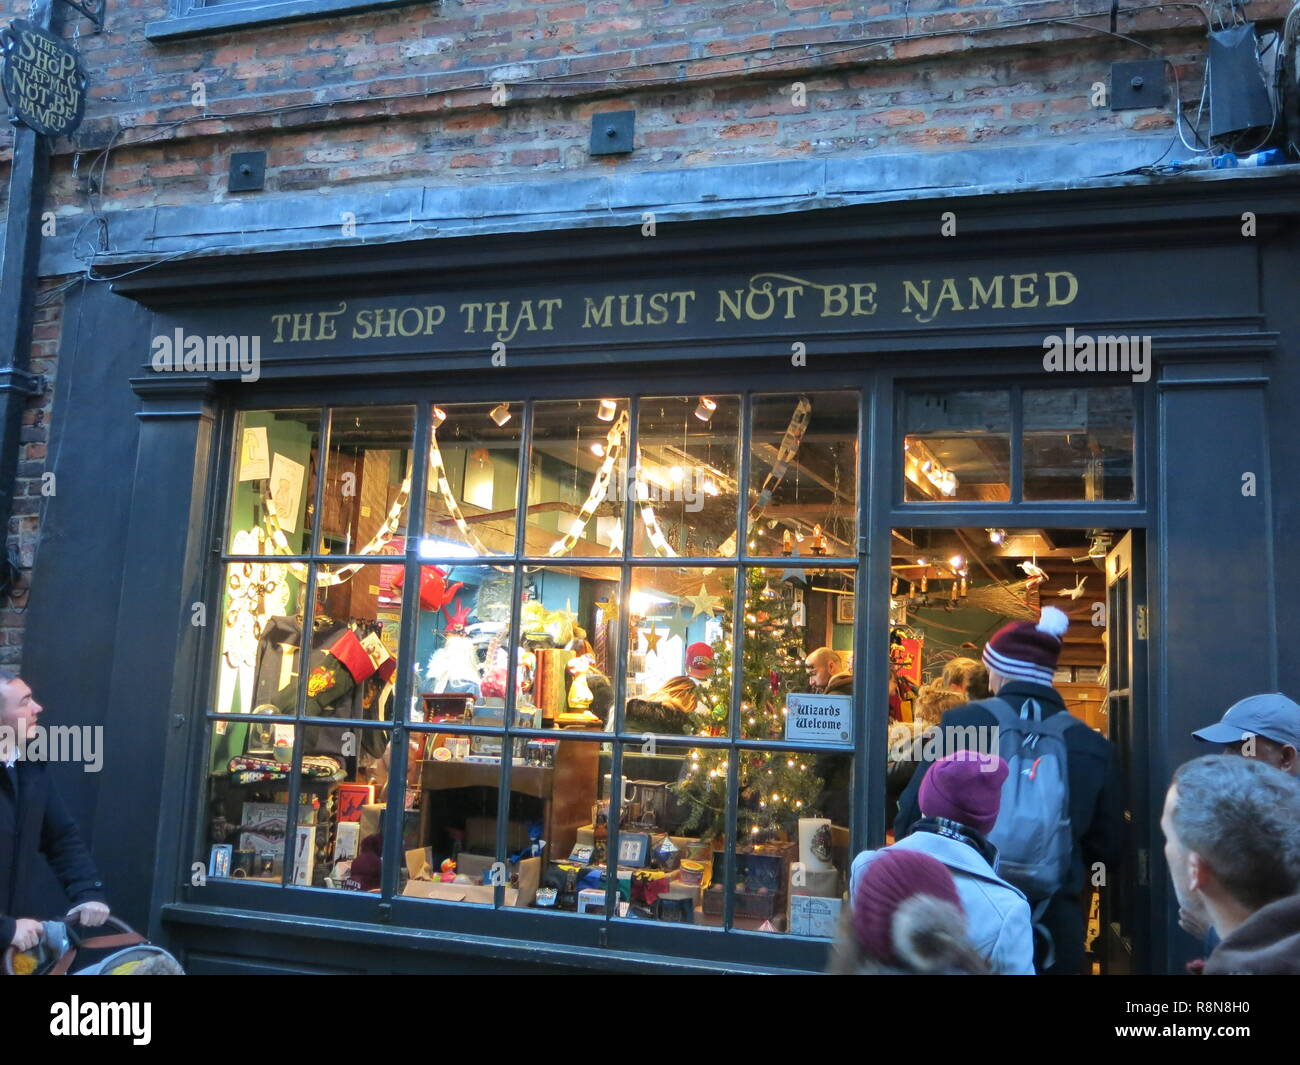 Exterior view of 'the shop that must not be named', officially licensed to sell Harry Potter merchandise and collectables; the Shambles, Xmas 2018 - Stock Image